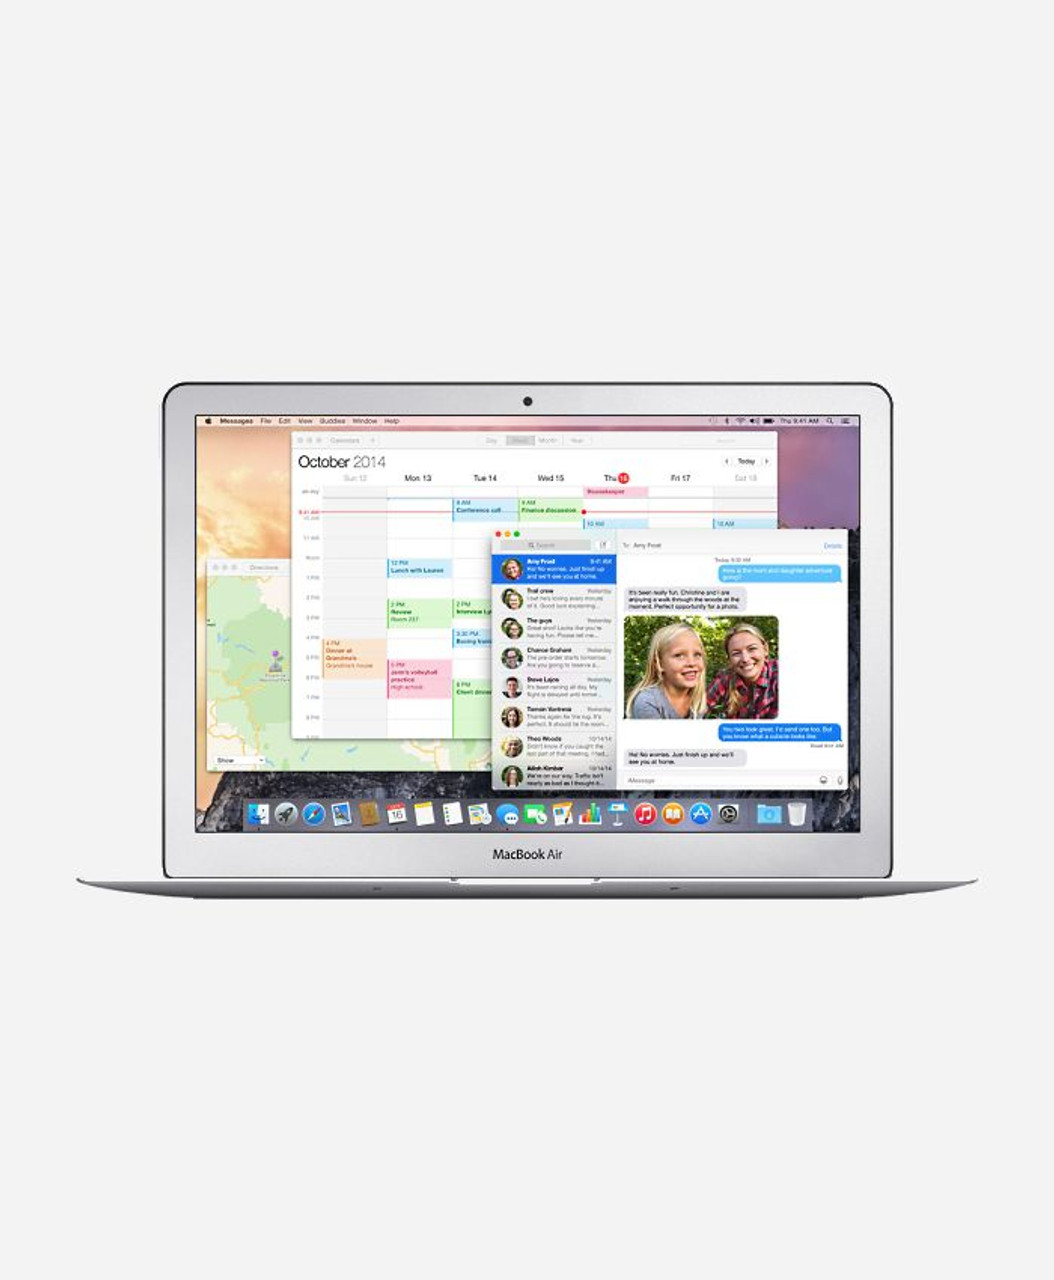 Macbook Air 13 3-inch (Glossy) 1 6GHZ Dual Core i5 (Early 2015)   - Apple  MJVE2LL/A